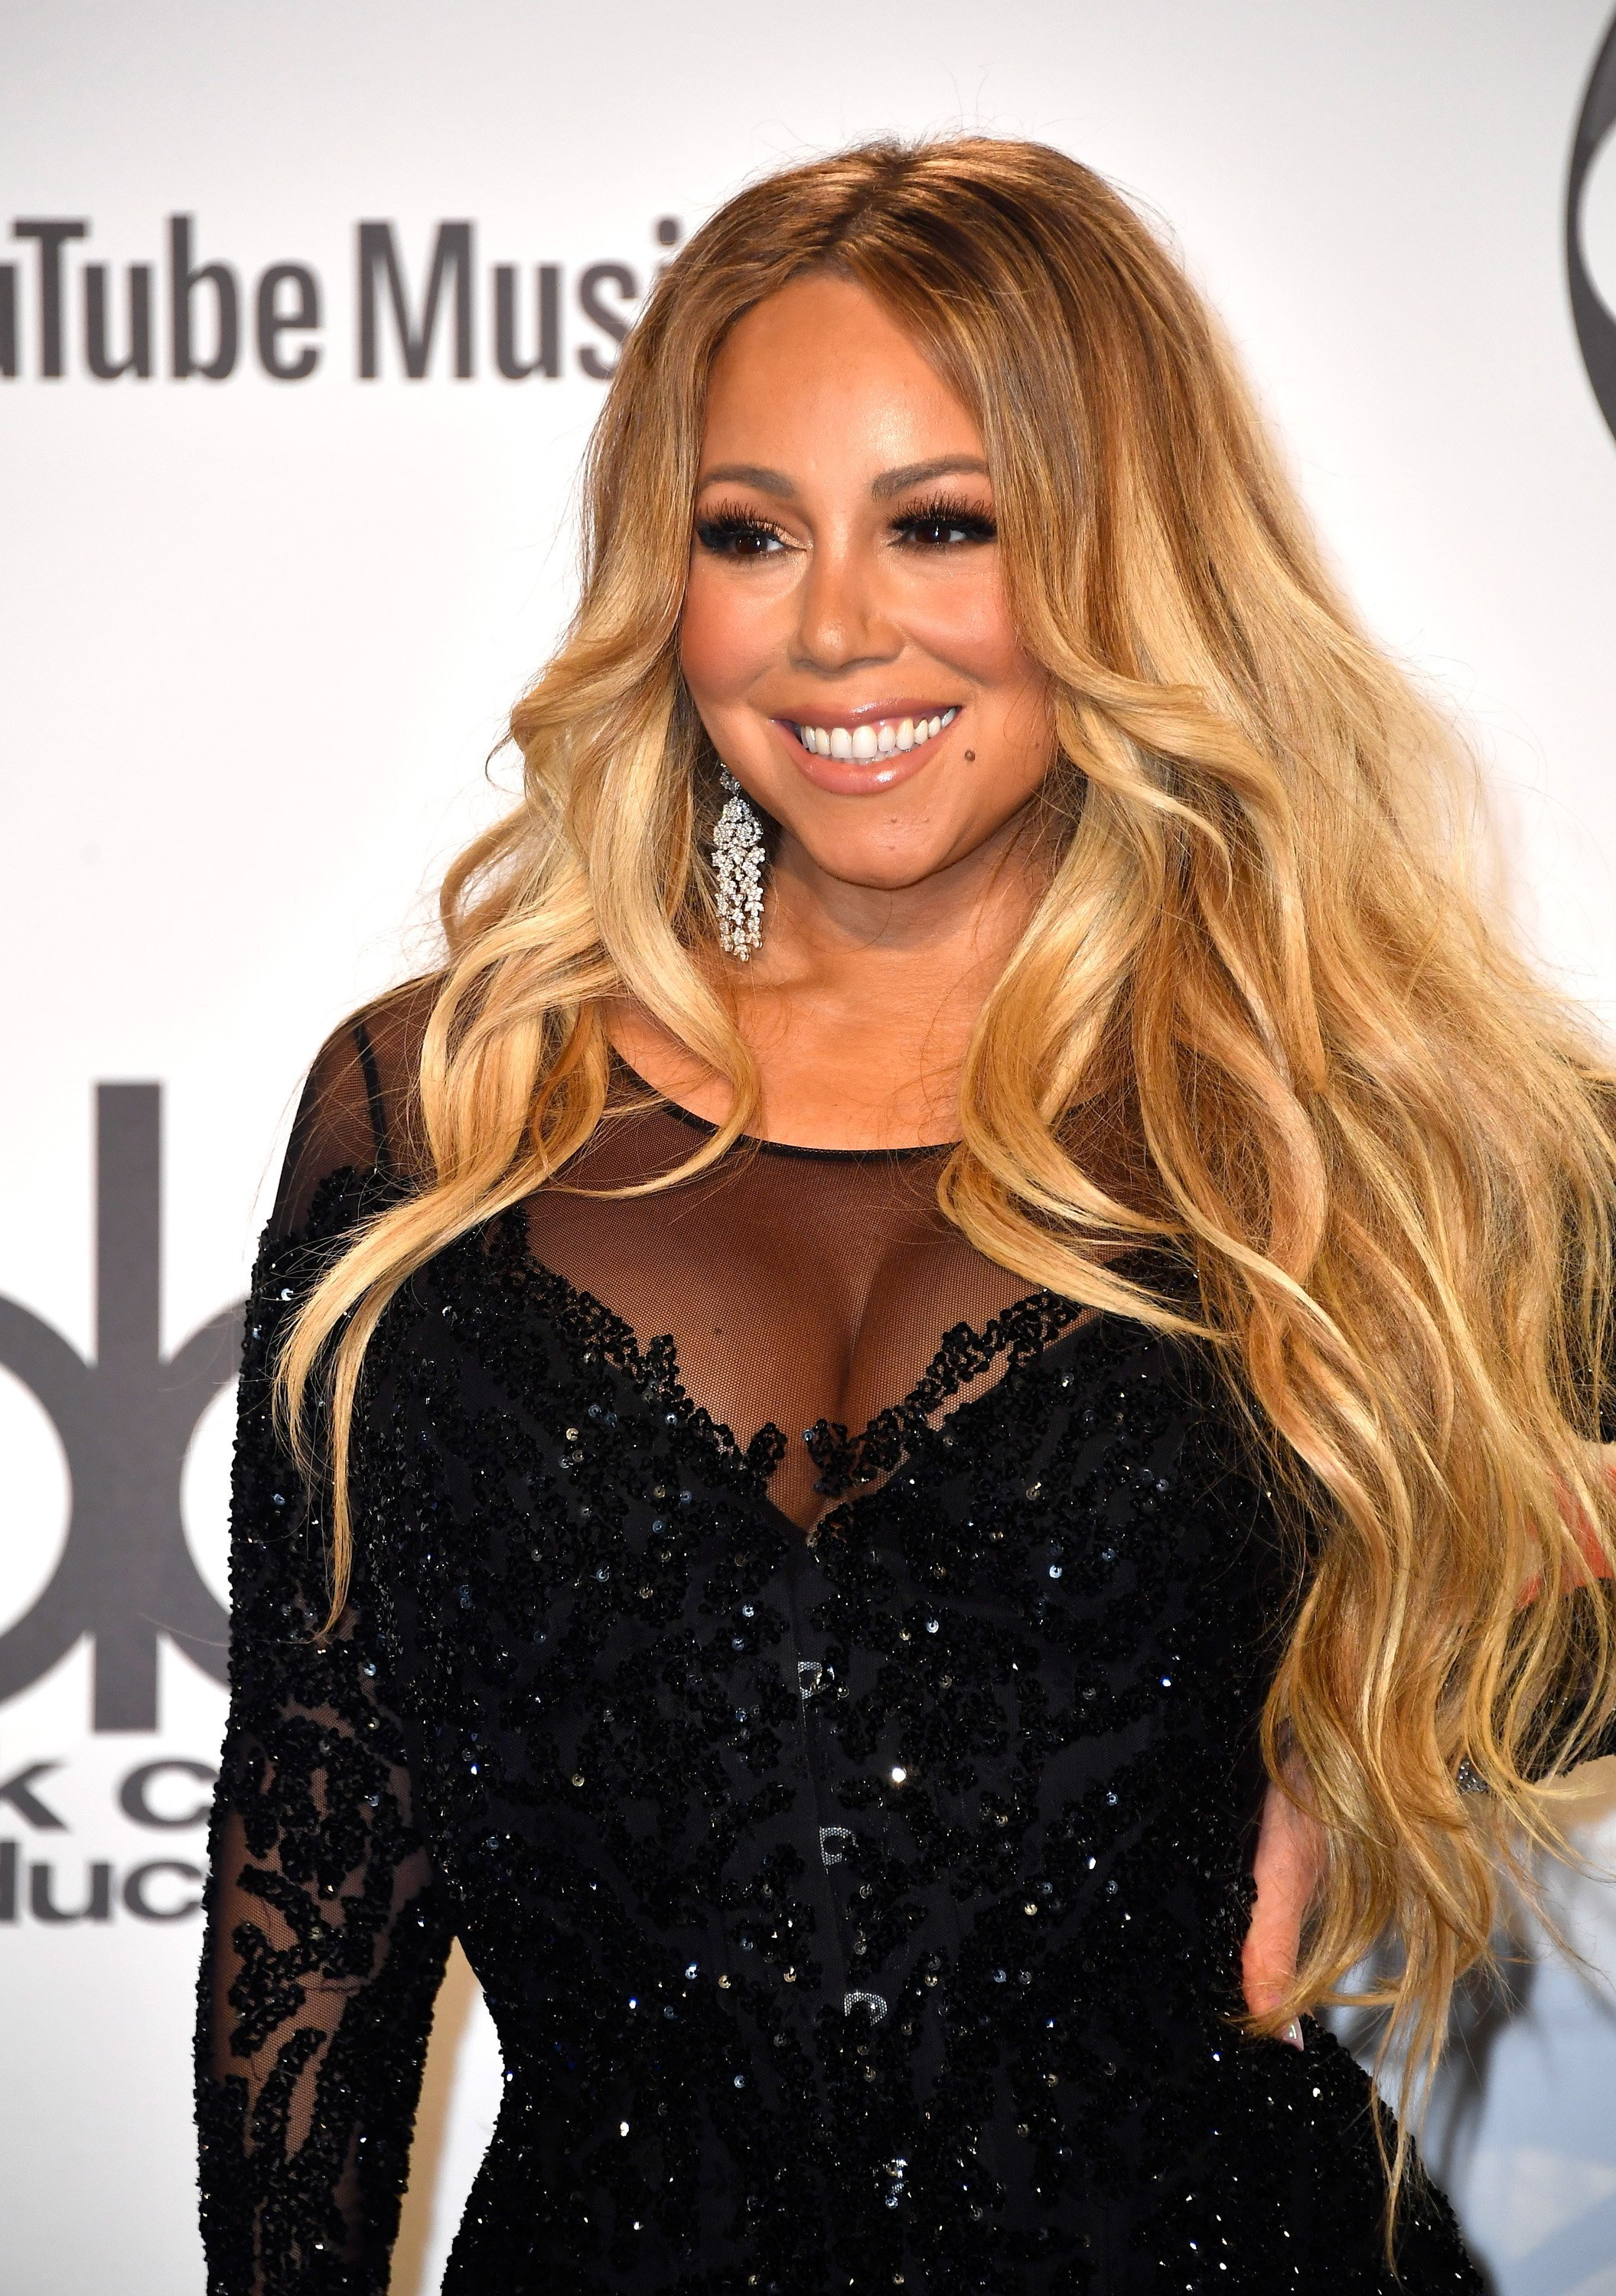 Mariah Carey poses in the press room during the 2018 American Music Awards at Microsoft Theater on October 9, 2018, in Los Angeles, California. | Source: Getty Images.